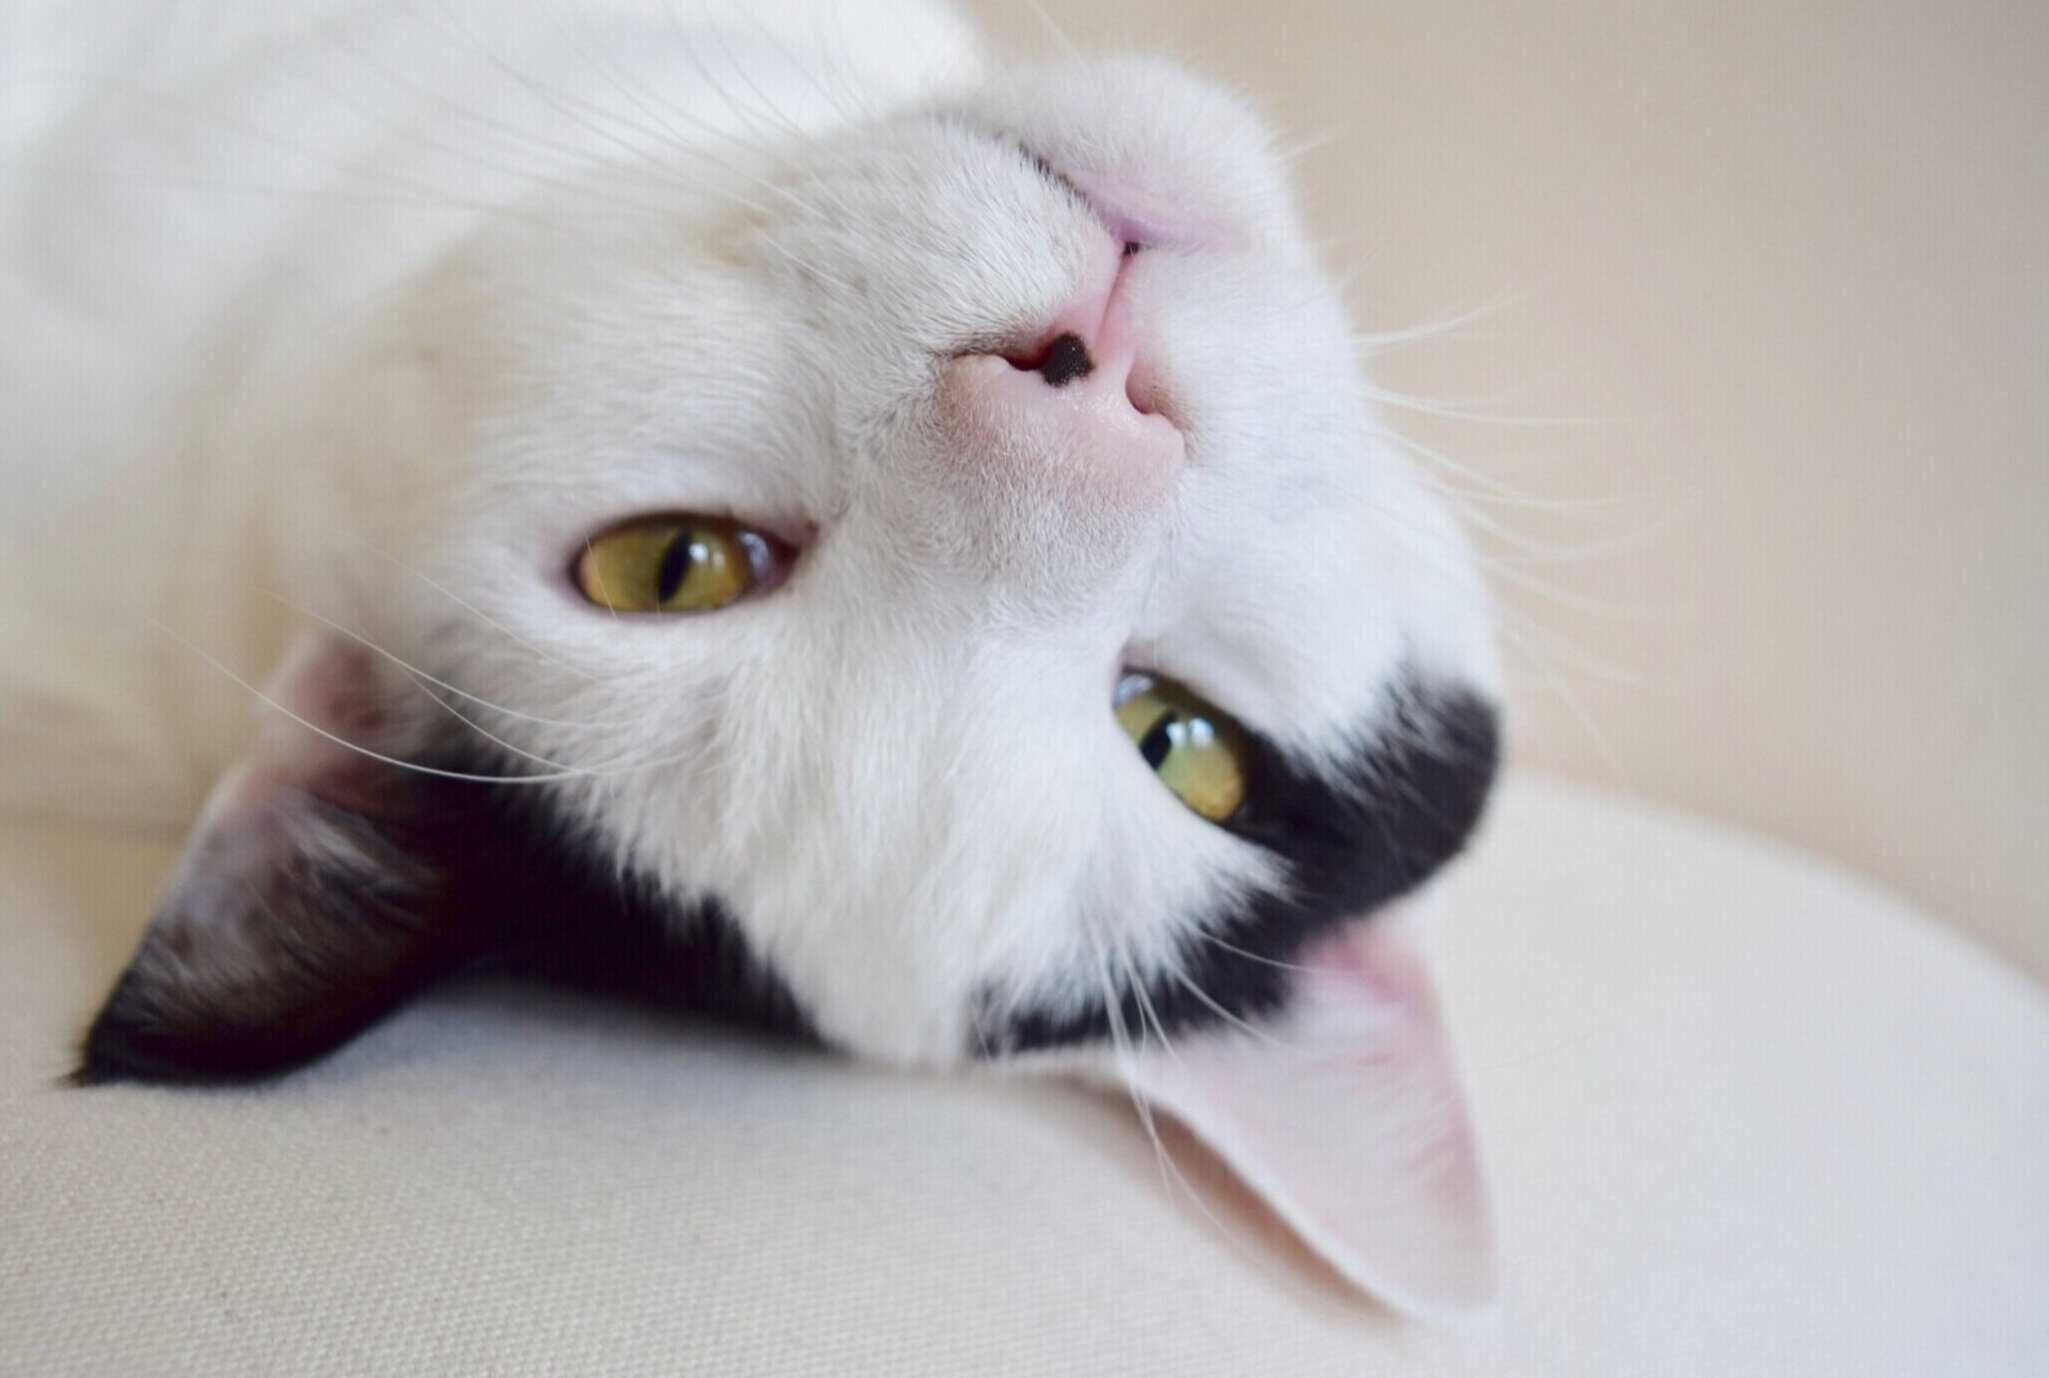 Cat People - Does your cat find your carpet more appealing than it's litterbox? Have they taken it upon themselves to launch sneak attacks on your ankles every morning? We are here to help your cat teach you to be a better roommate :).